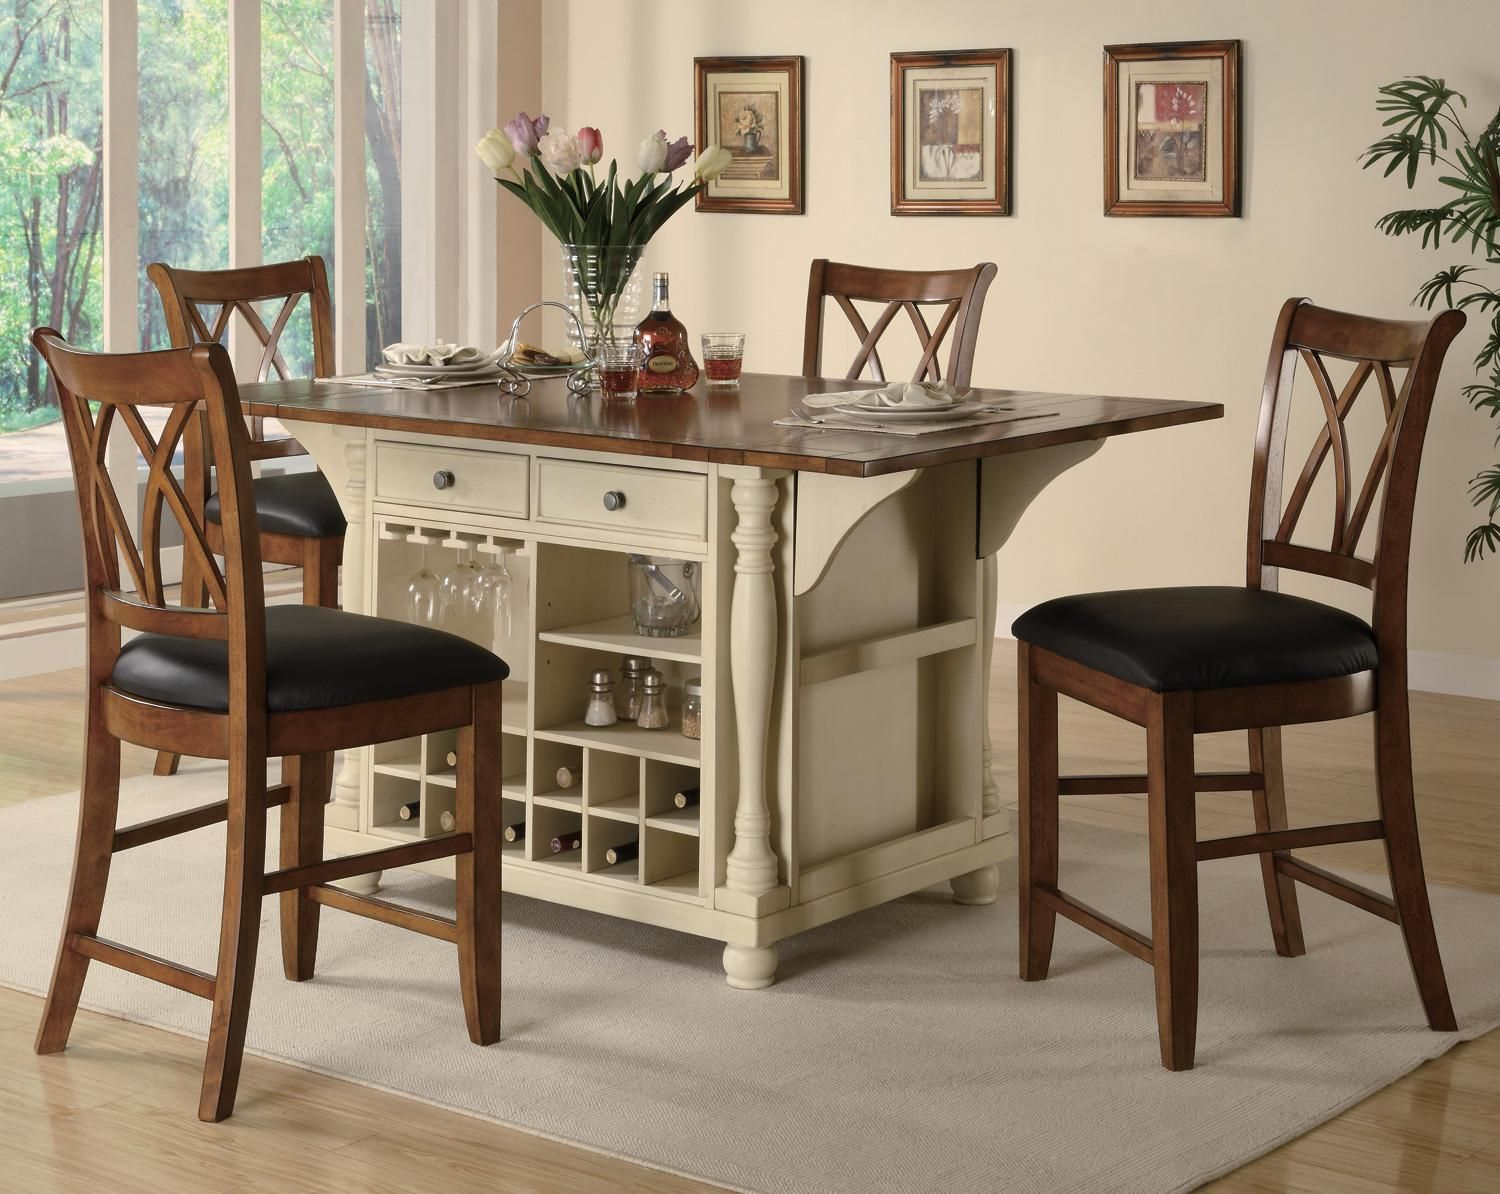 Tall Kitchen Table And Chairs Dinette Sets Kitchen Table And